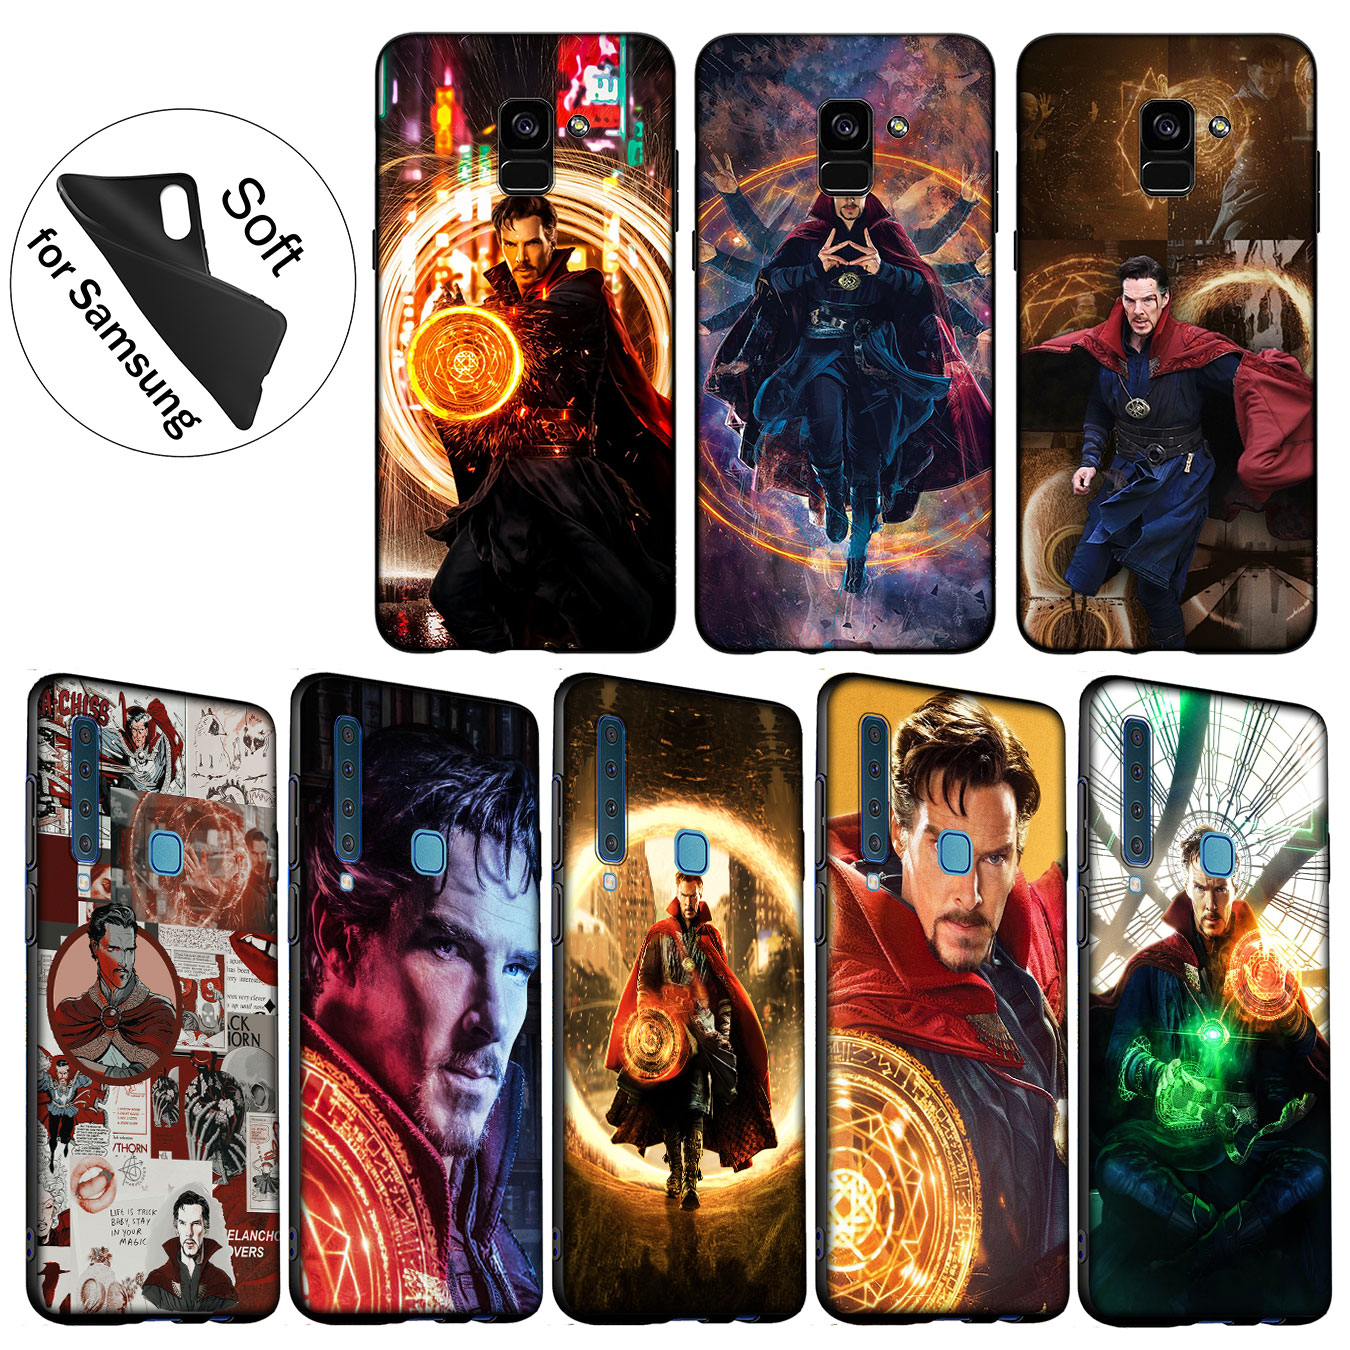 Iyicao Marvel Doctor Stephen Strange Soft Silicone Cover Case For Samsung Galaxy A6 Plus A9 A8 A7 2018 A3 A5 2016 2017 Note 9 8 Crease-Resistance Fitted Cases Cellphones & Telecommunications